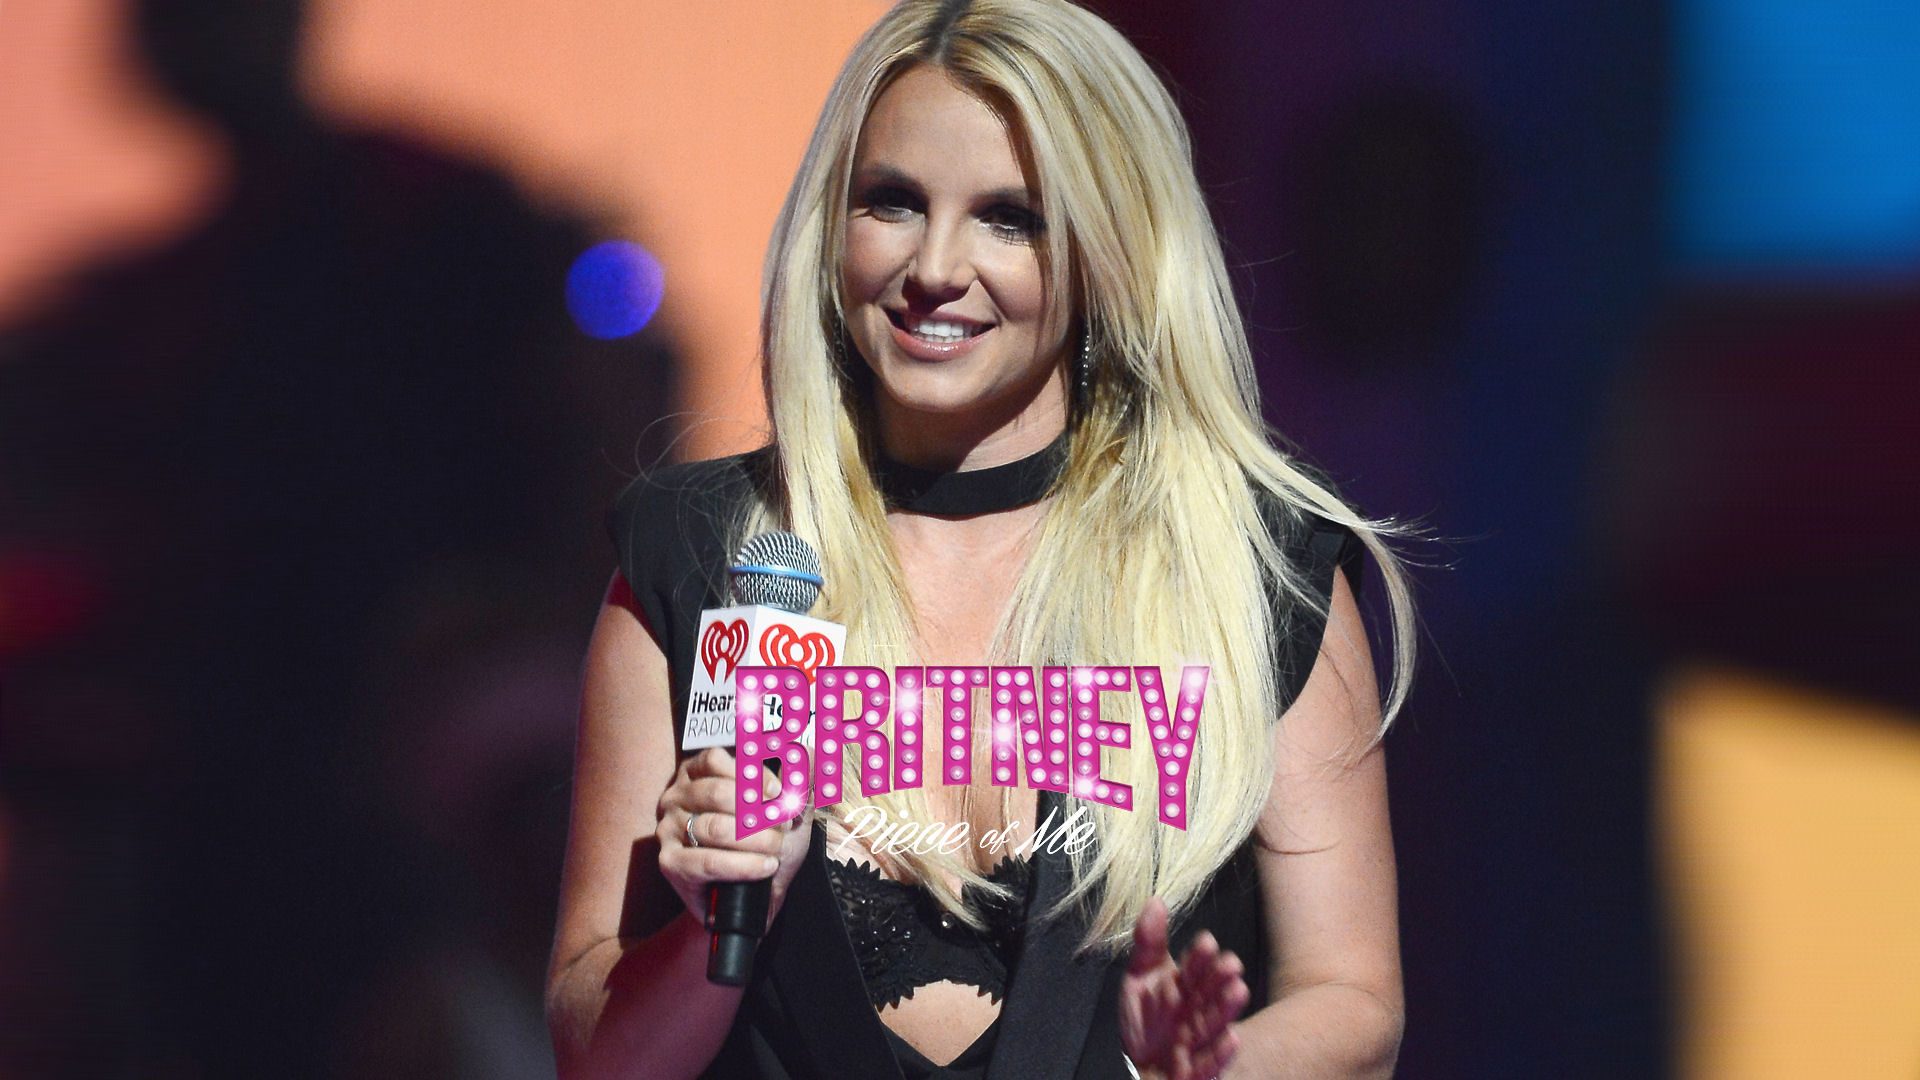 Britney-Spears-image-britney-spears-36378695-1920-1080